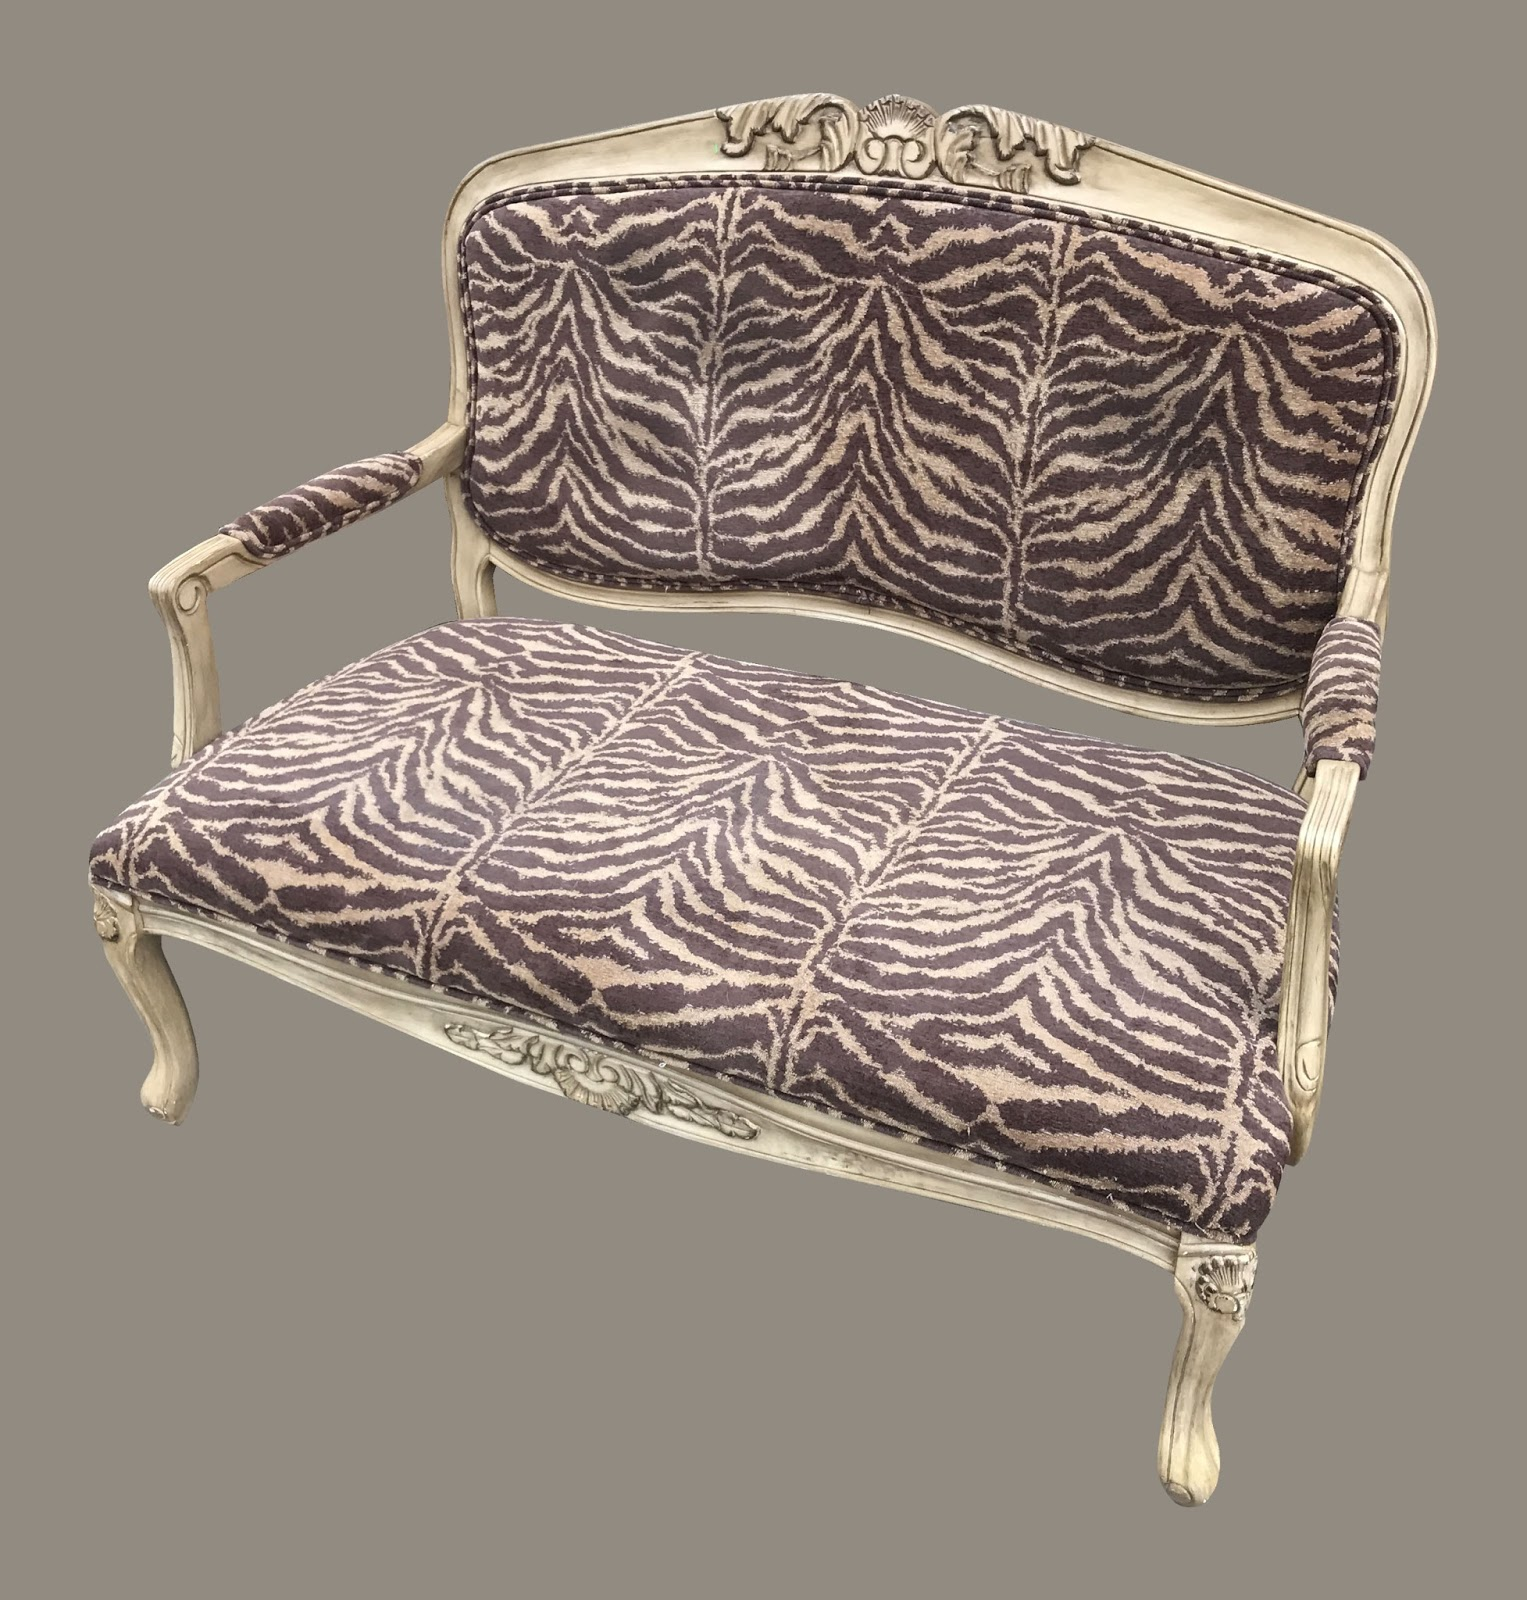 Uhuru Furniture Amp Collectibles Tiger Striped French